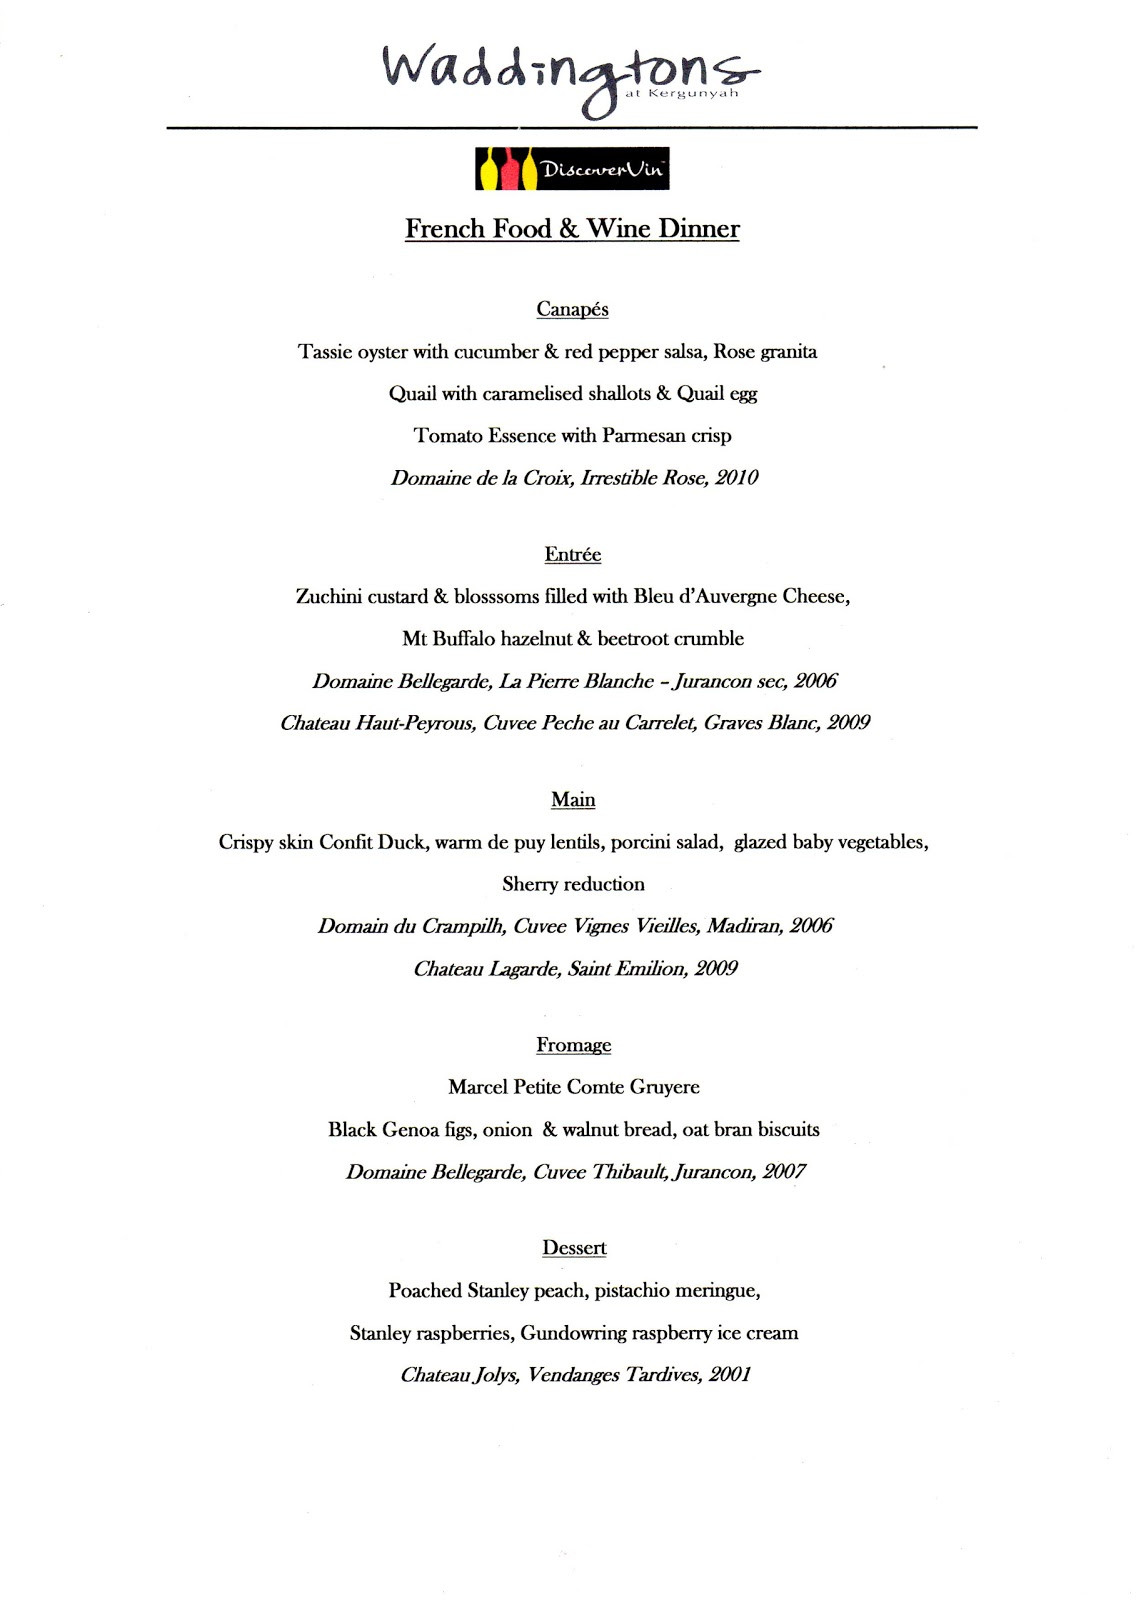 French Dinner Menu  DiscoverVin French Food & Wine Dinner at Waddingtons of